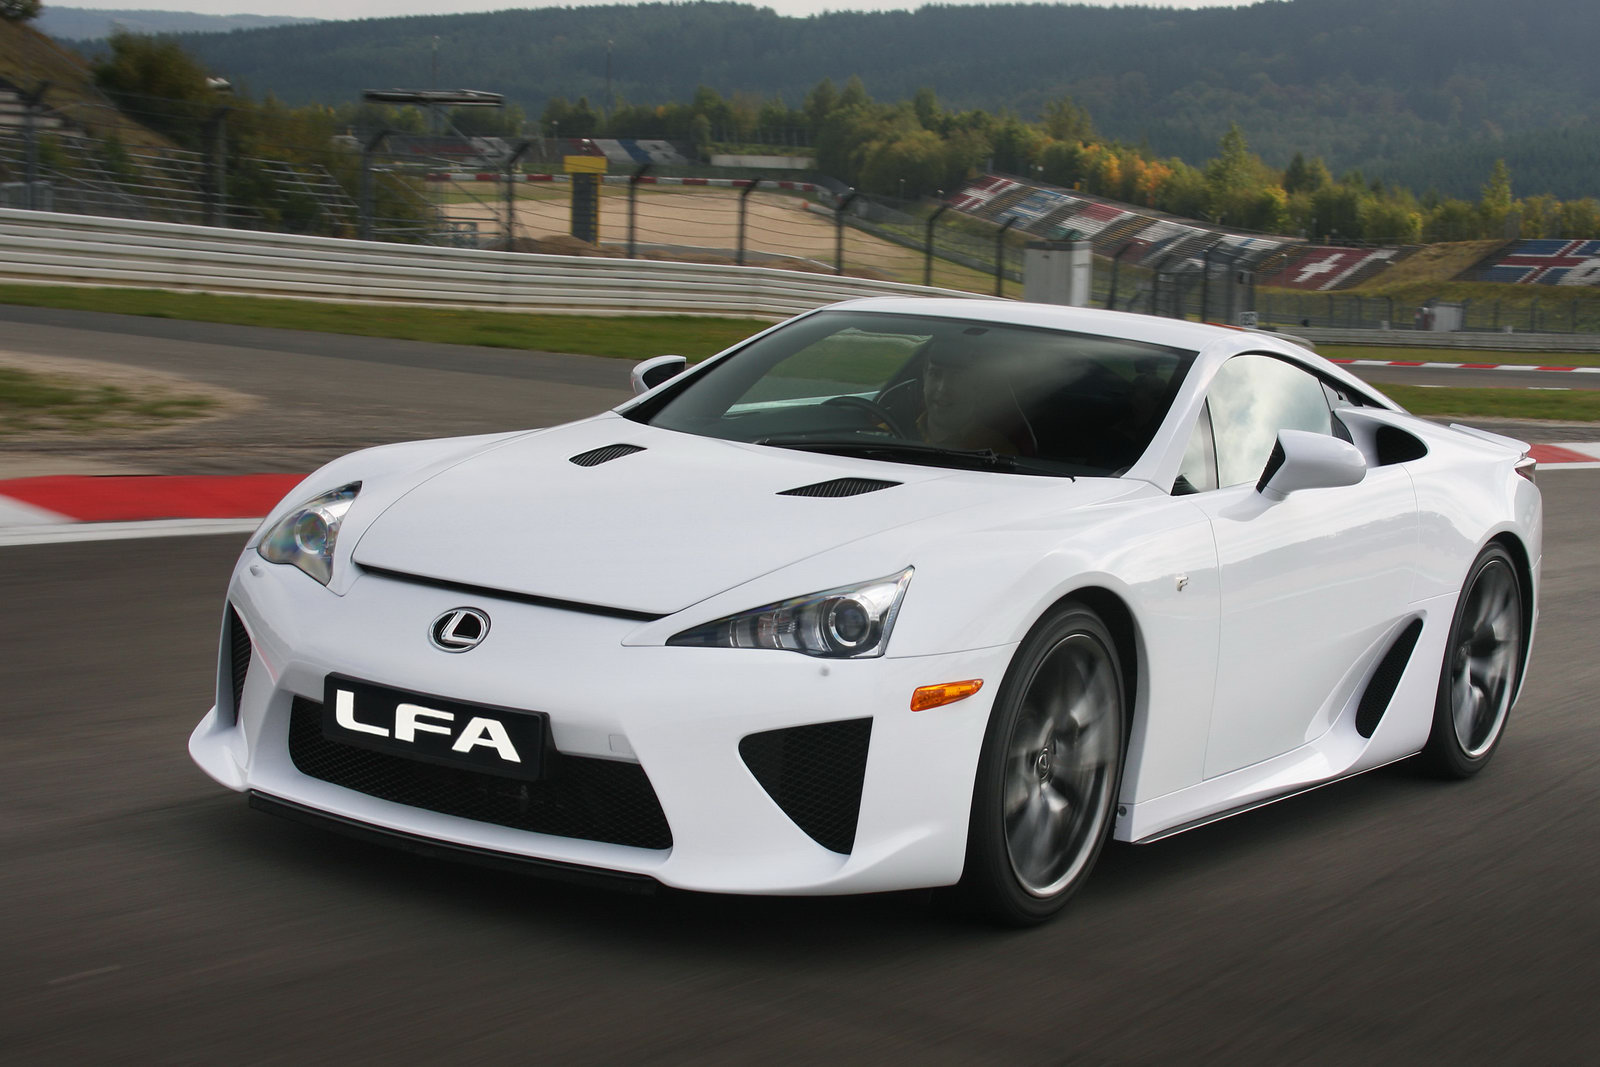 lexus lfa 2012 new car price specification review images. Black Bedroom Furniture Sets. Home Design Ideas